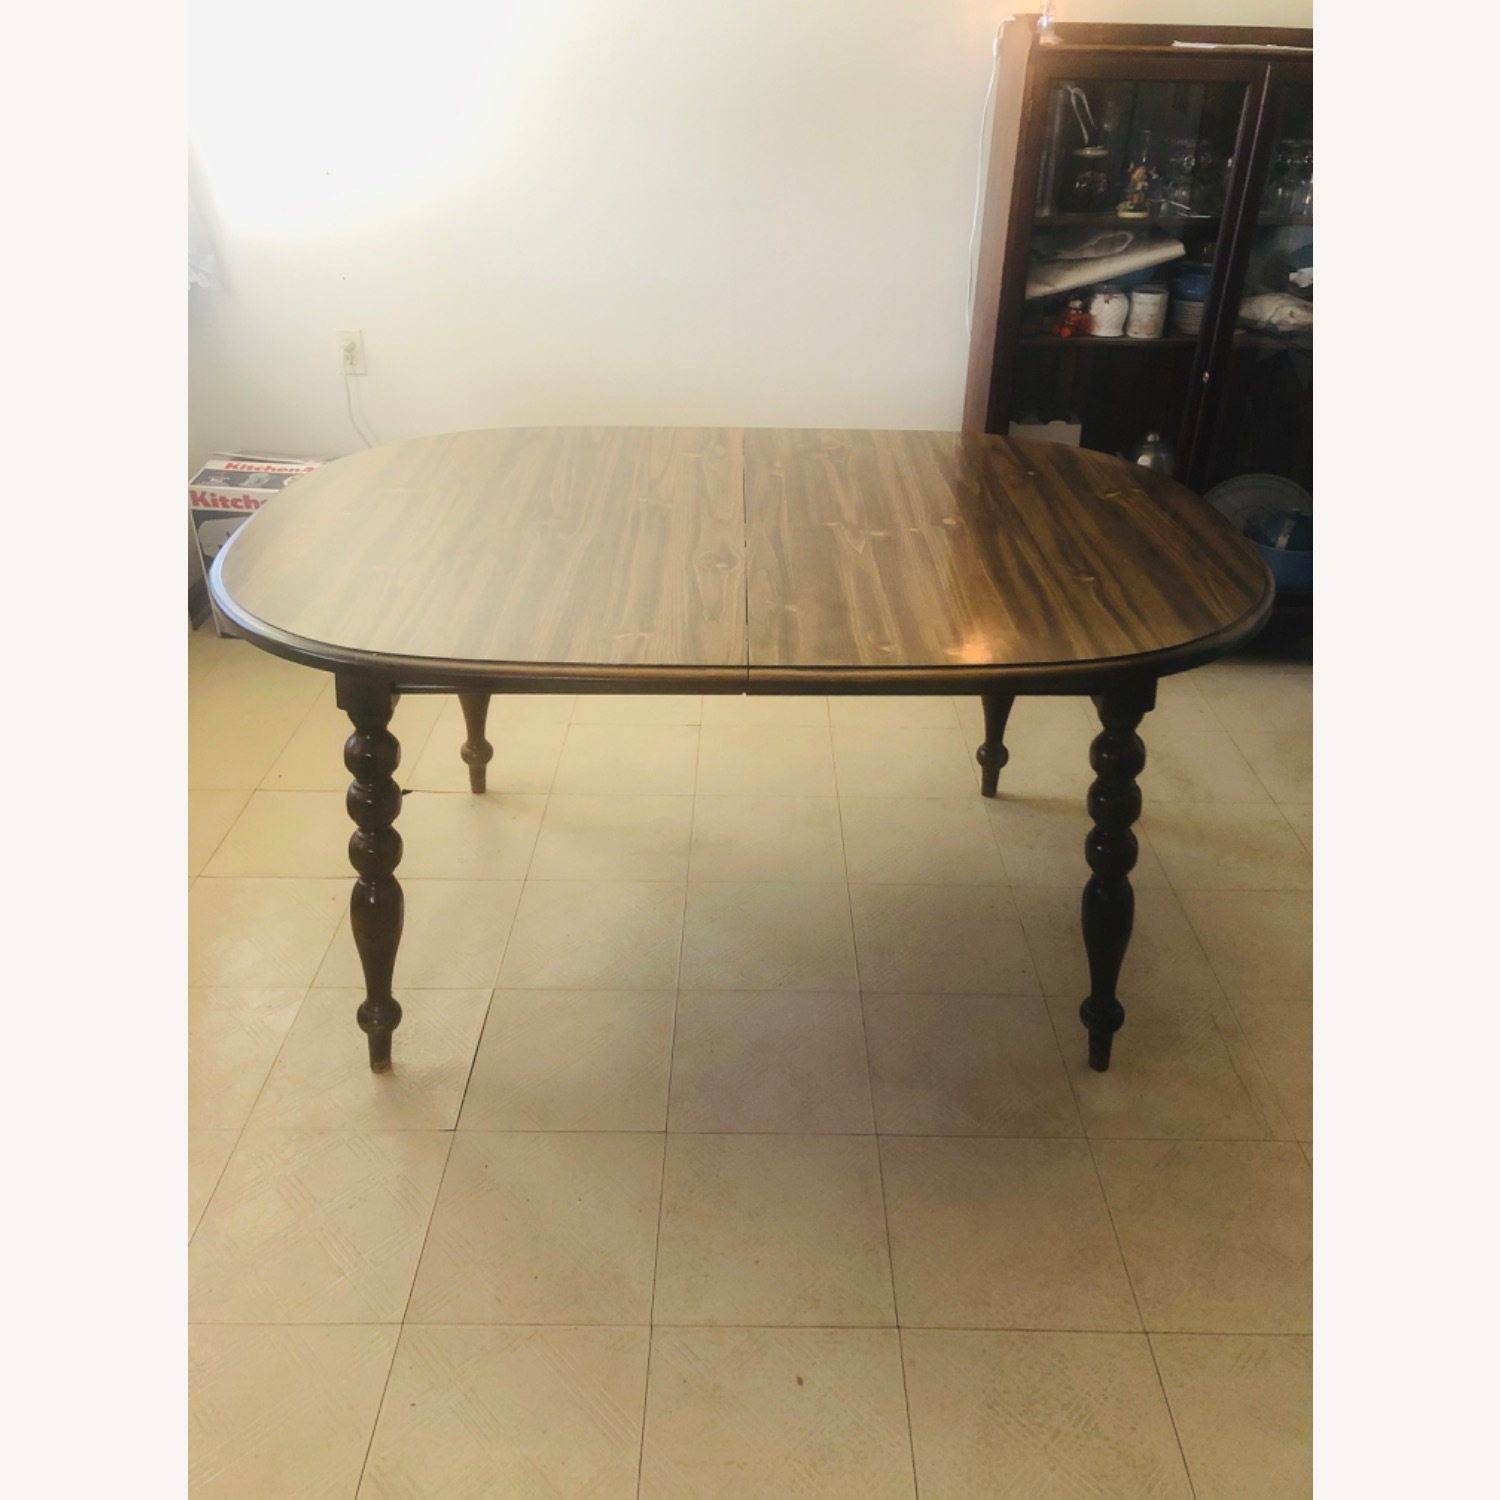 Solid Pine Wood Dining Table - image-1